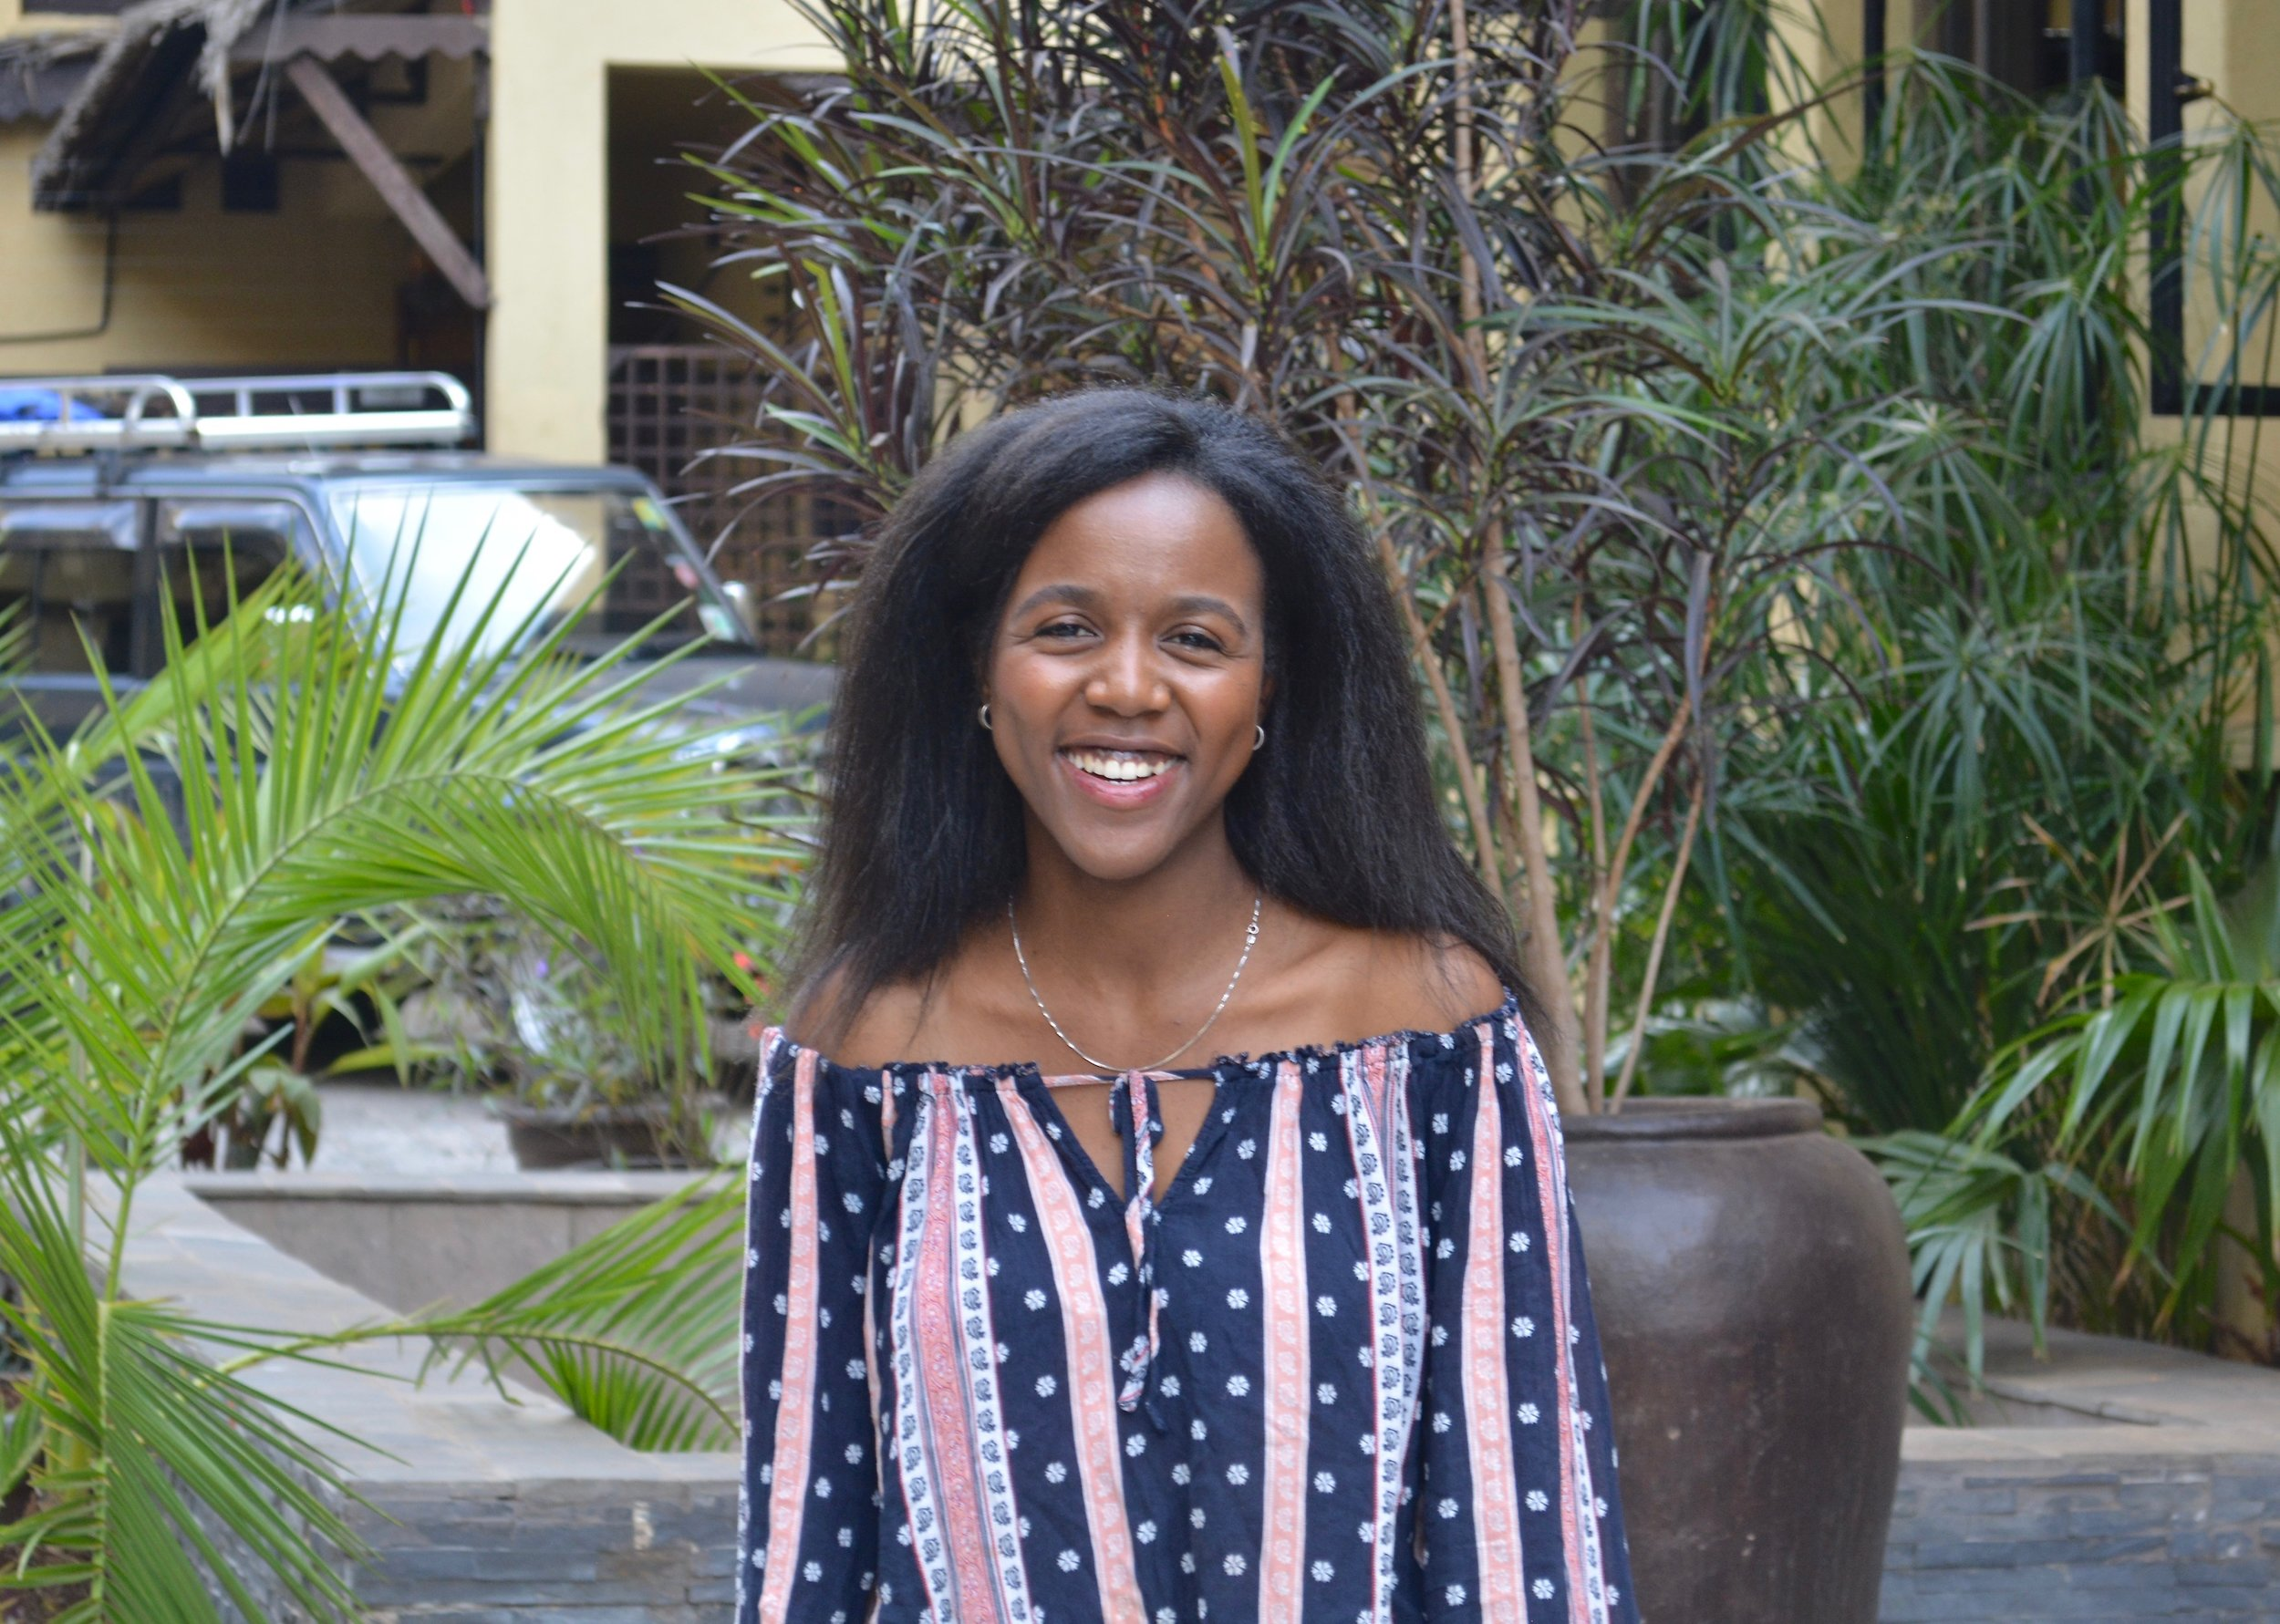 Michelle Ondari '19   Michelle is a senior from Nairobi and New York. She is also involved with Health Leads, International Student Ambassadors, and Global Health Research. A fun fact is that Michelle spent high school in three different countries: Kenya, Ethiopia and the US! Her favorite spot on campus is Mudd Cafe (not Brody!)